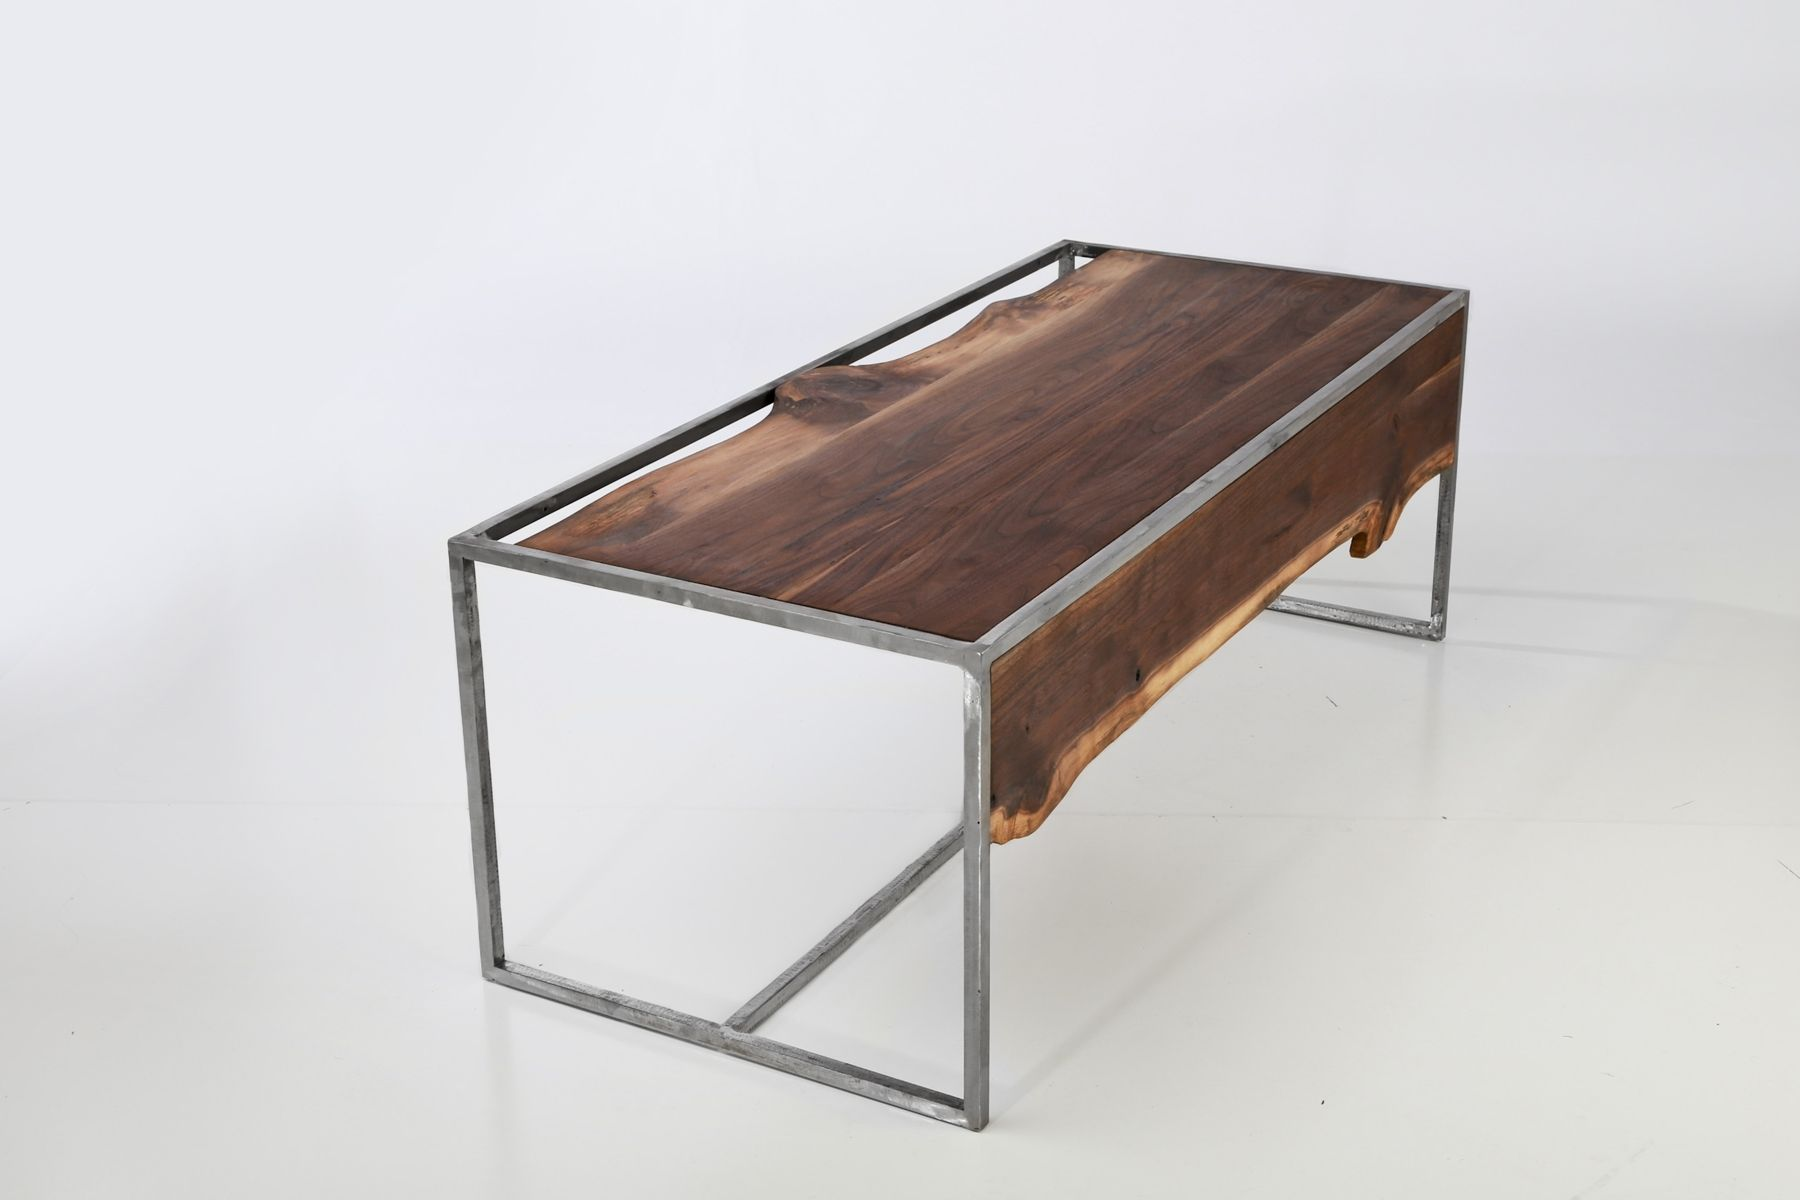 Custom Made Industrial Rustic Coffee Table By Anton Maka Designs